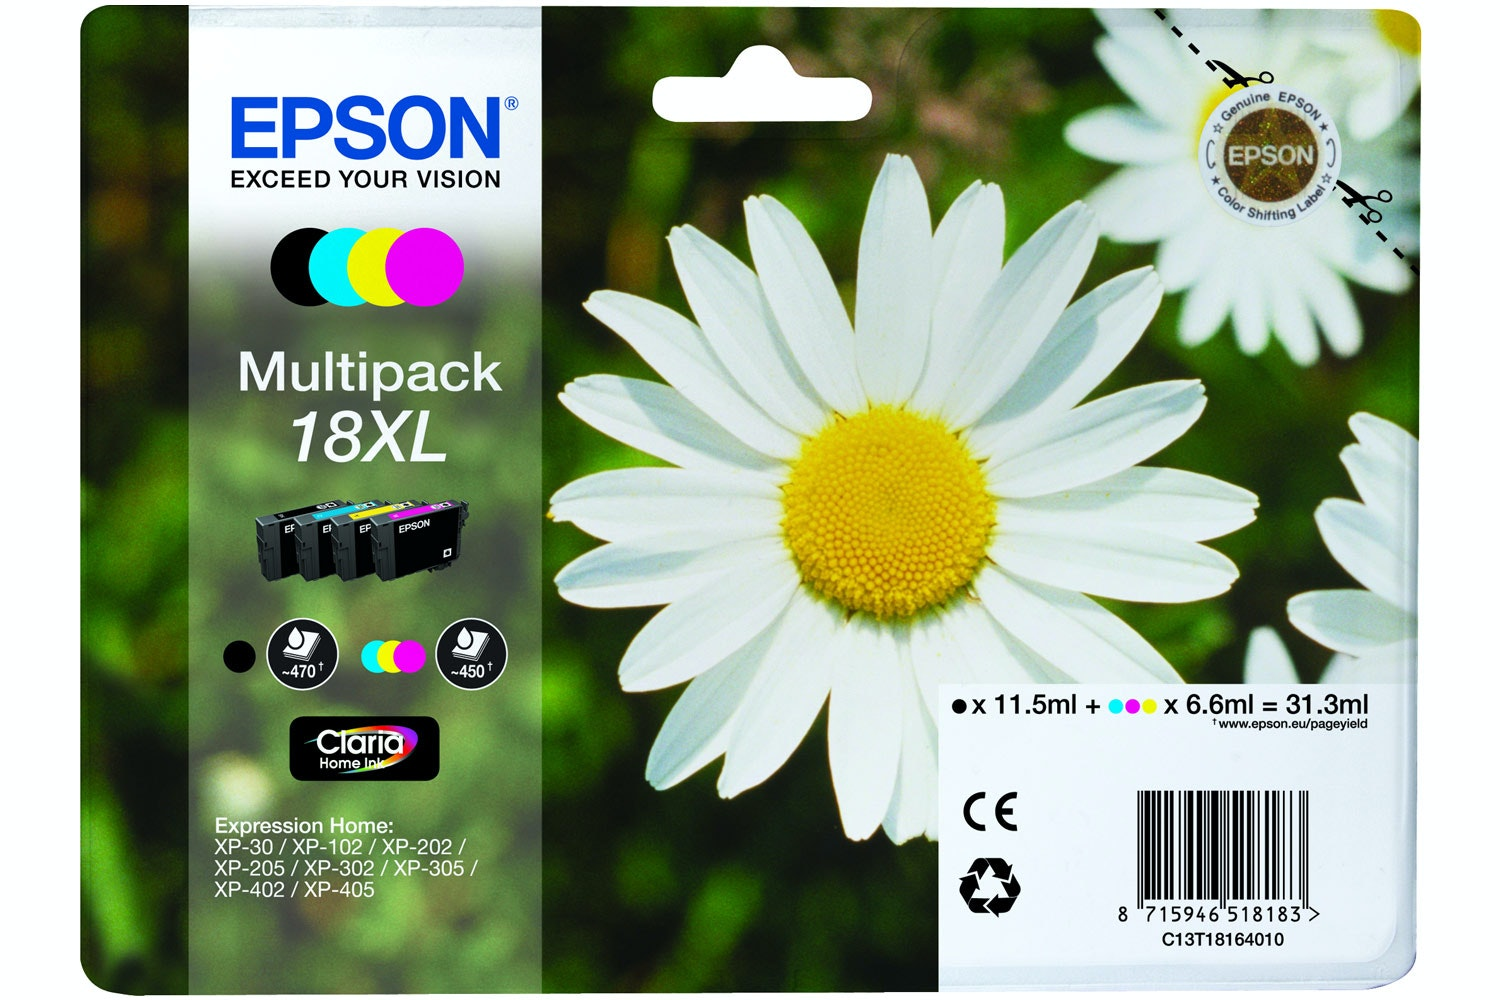 Epson XL Daisy Ink Multipack